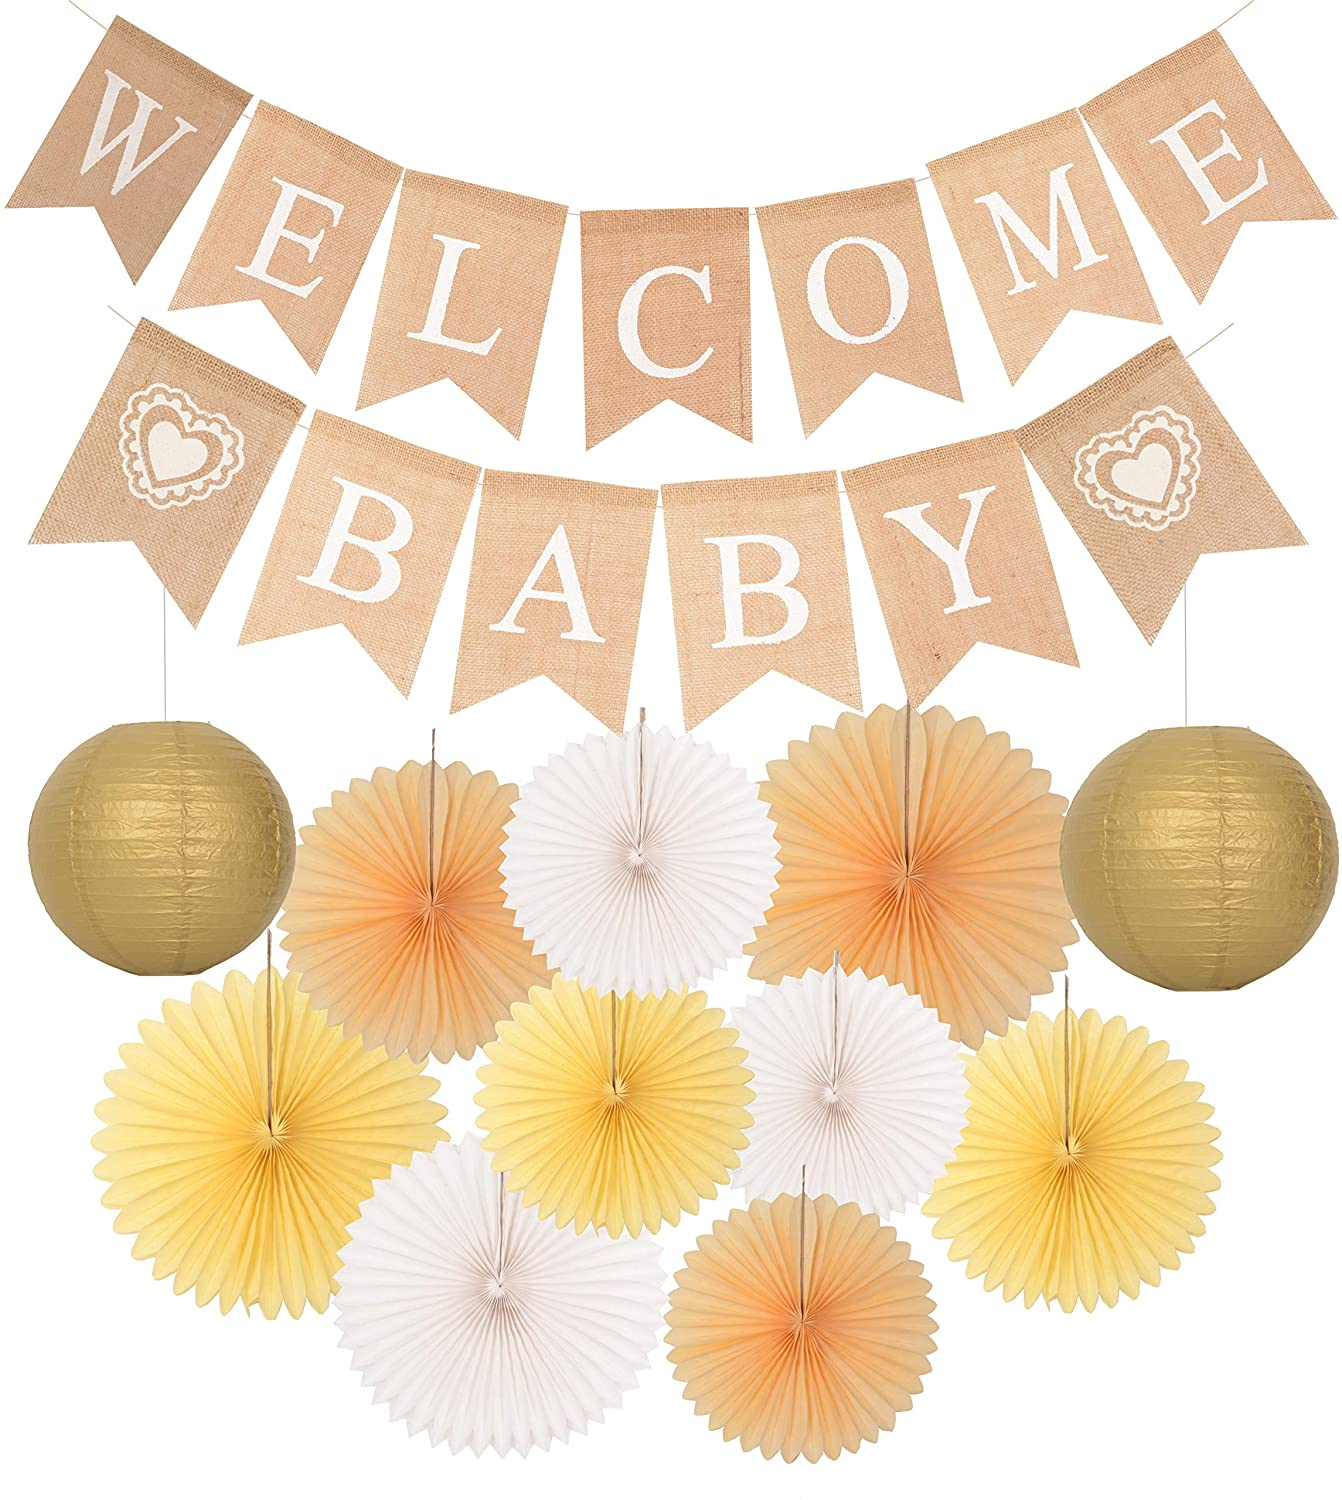 Welcome Baby Party Decoration | Rustic Welcome Baby Burlap Banner | Baby Shower Decorations | Burlap Banner Welcome Baby | Gender Reveal Boy Girl Party Supplies by MEANT2TOBE